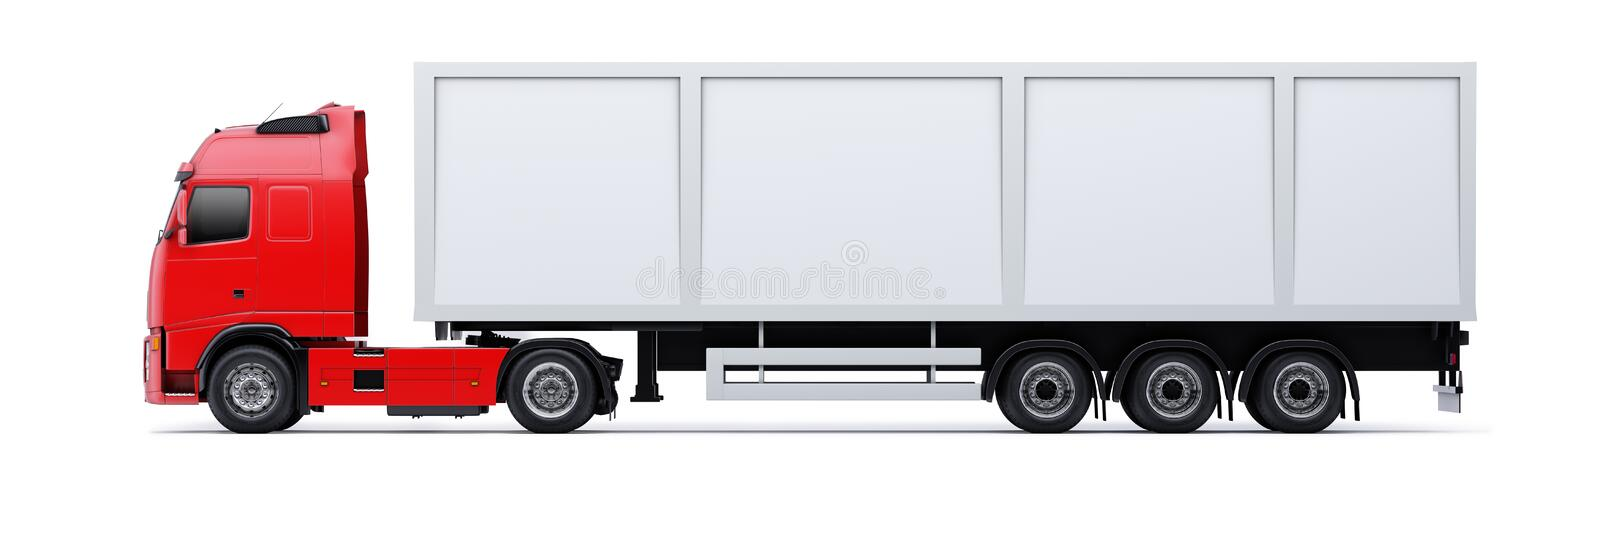 Truck isolated. Profile view of a large truck with a red cab section, isolated against a white background royalty free illustration